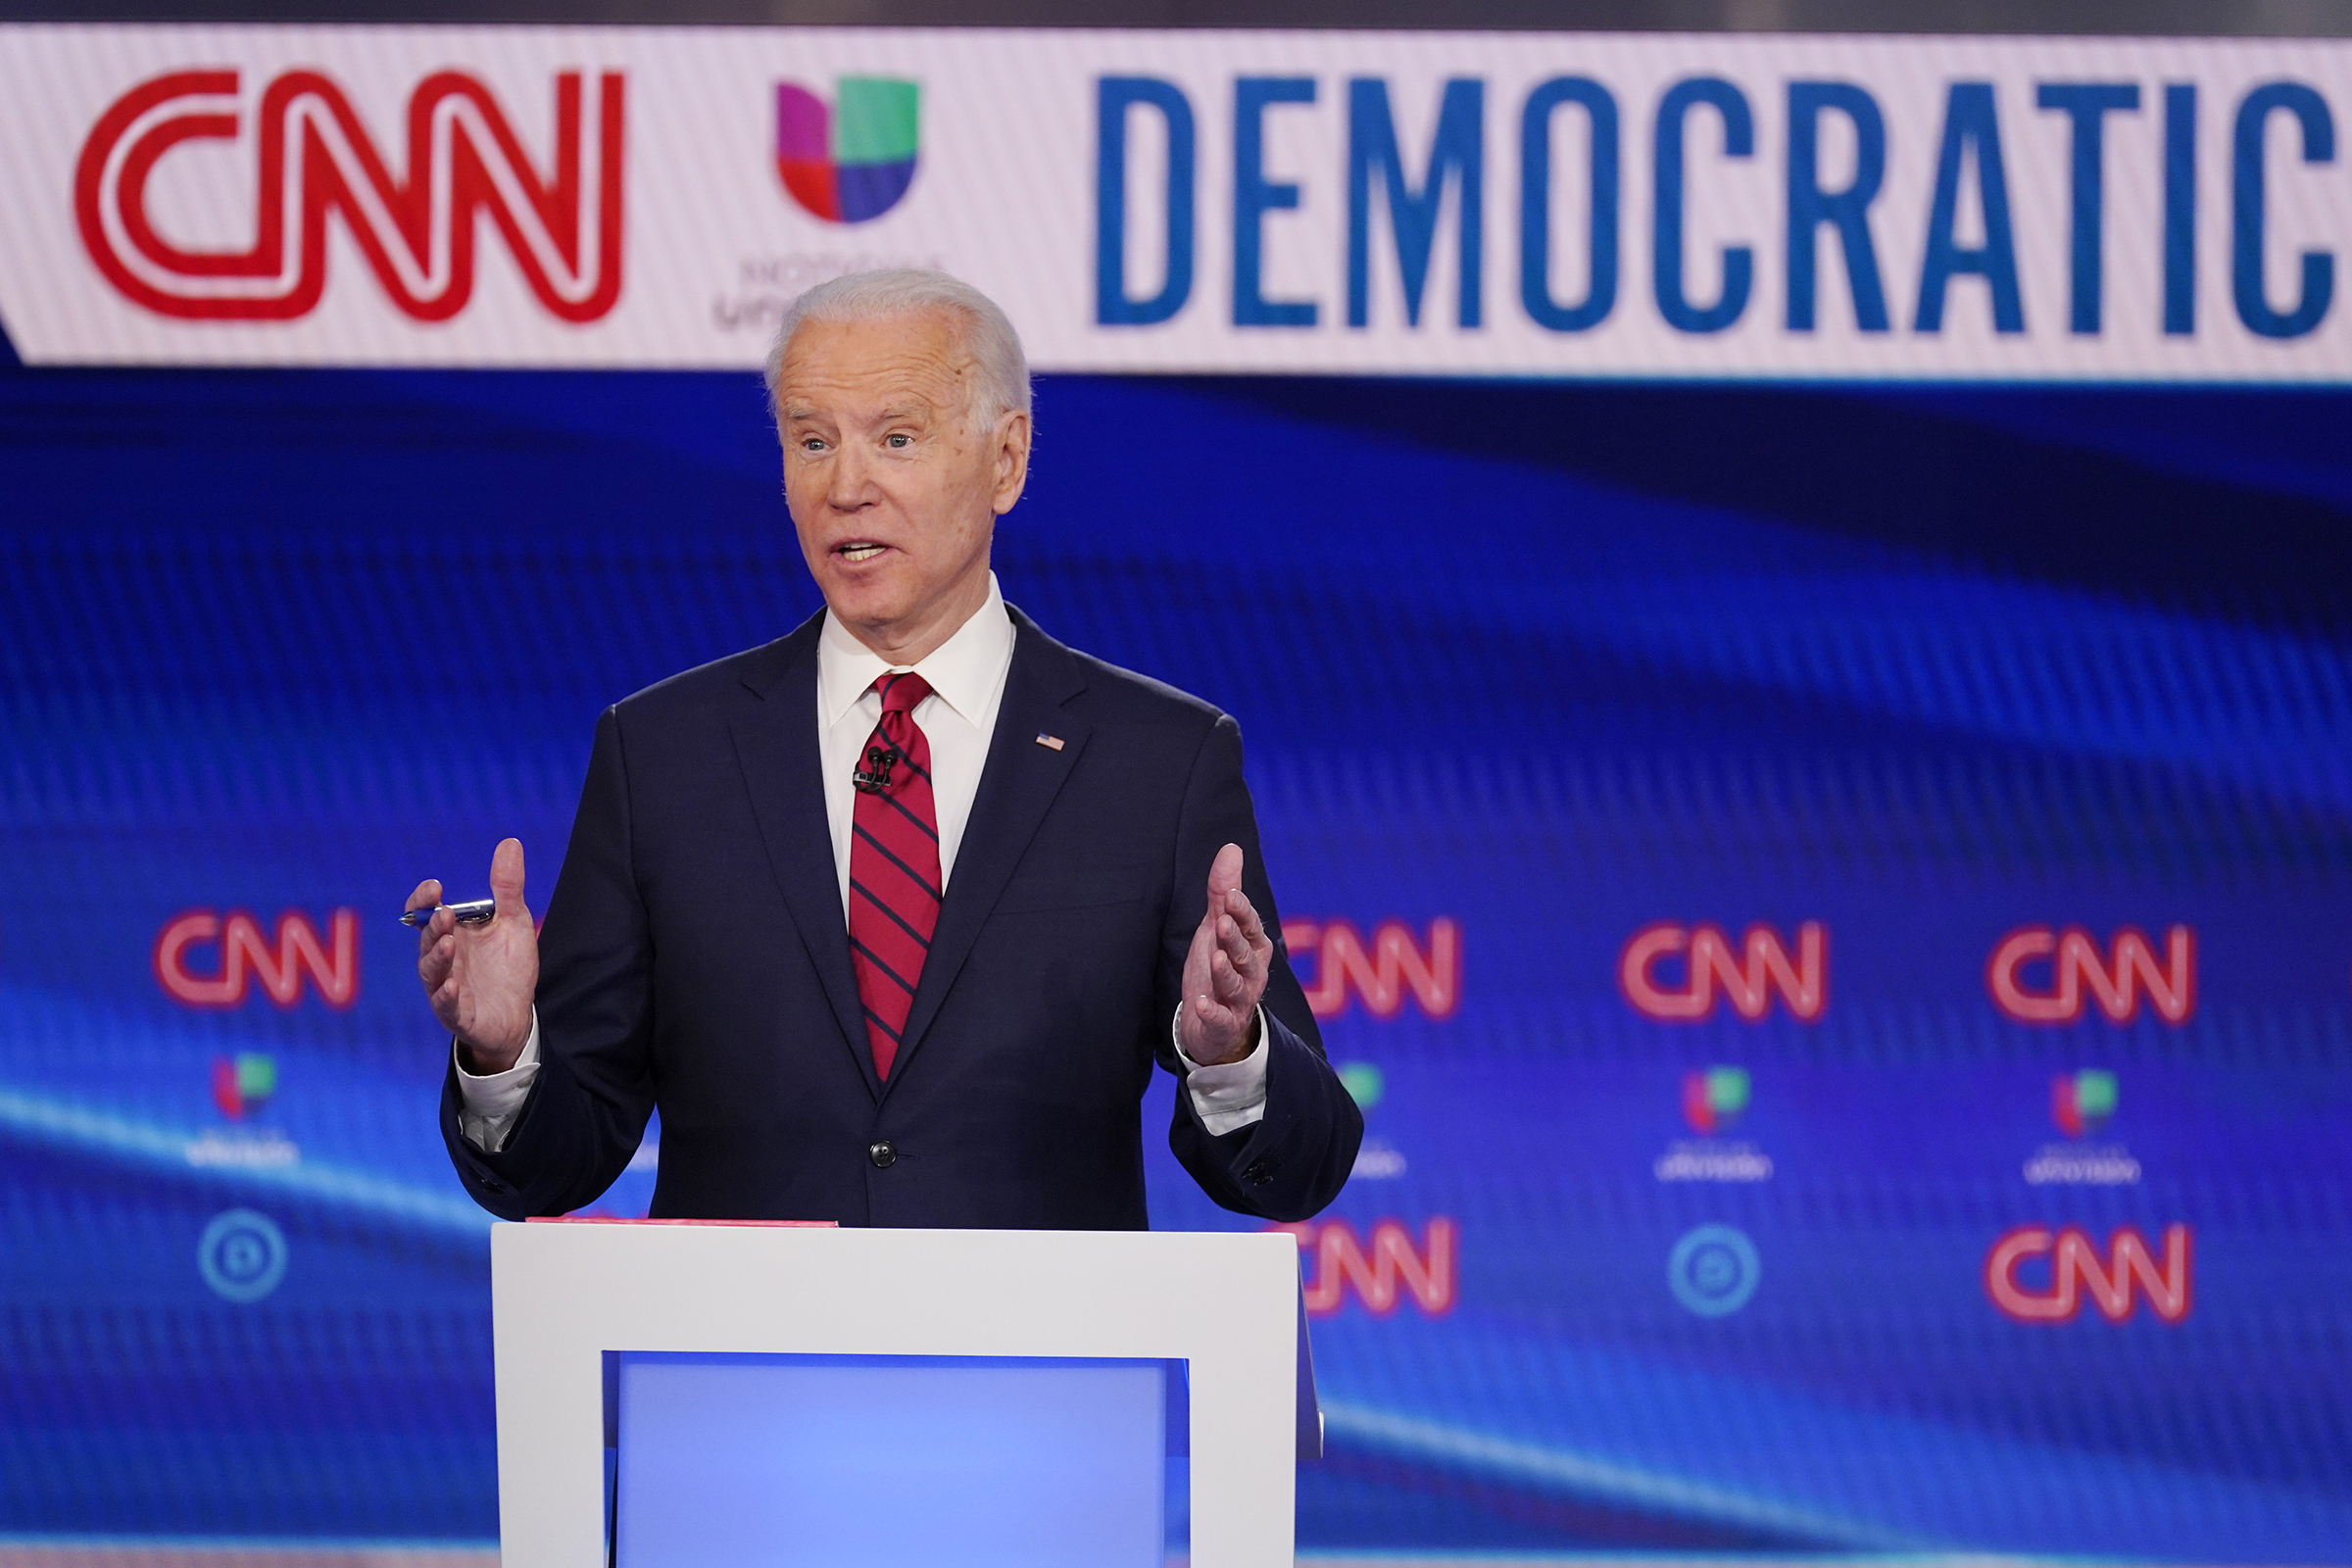 Vice President Joe Biden, participates in a Democratic presidential primary debate with Sen. Bernie Sanders, I-Vt., on March 15, 2020, in Washington D.C.